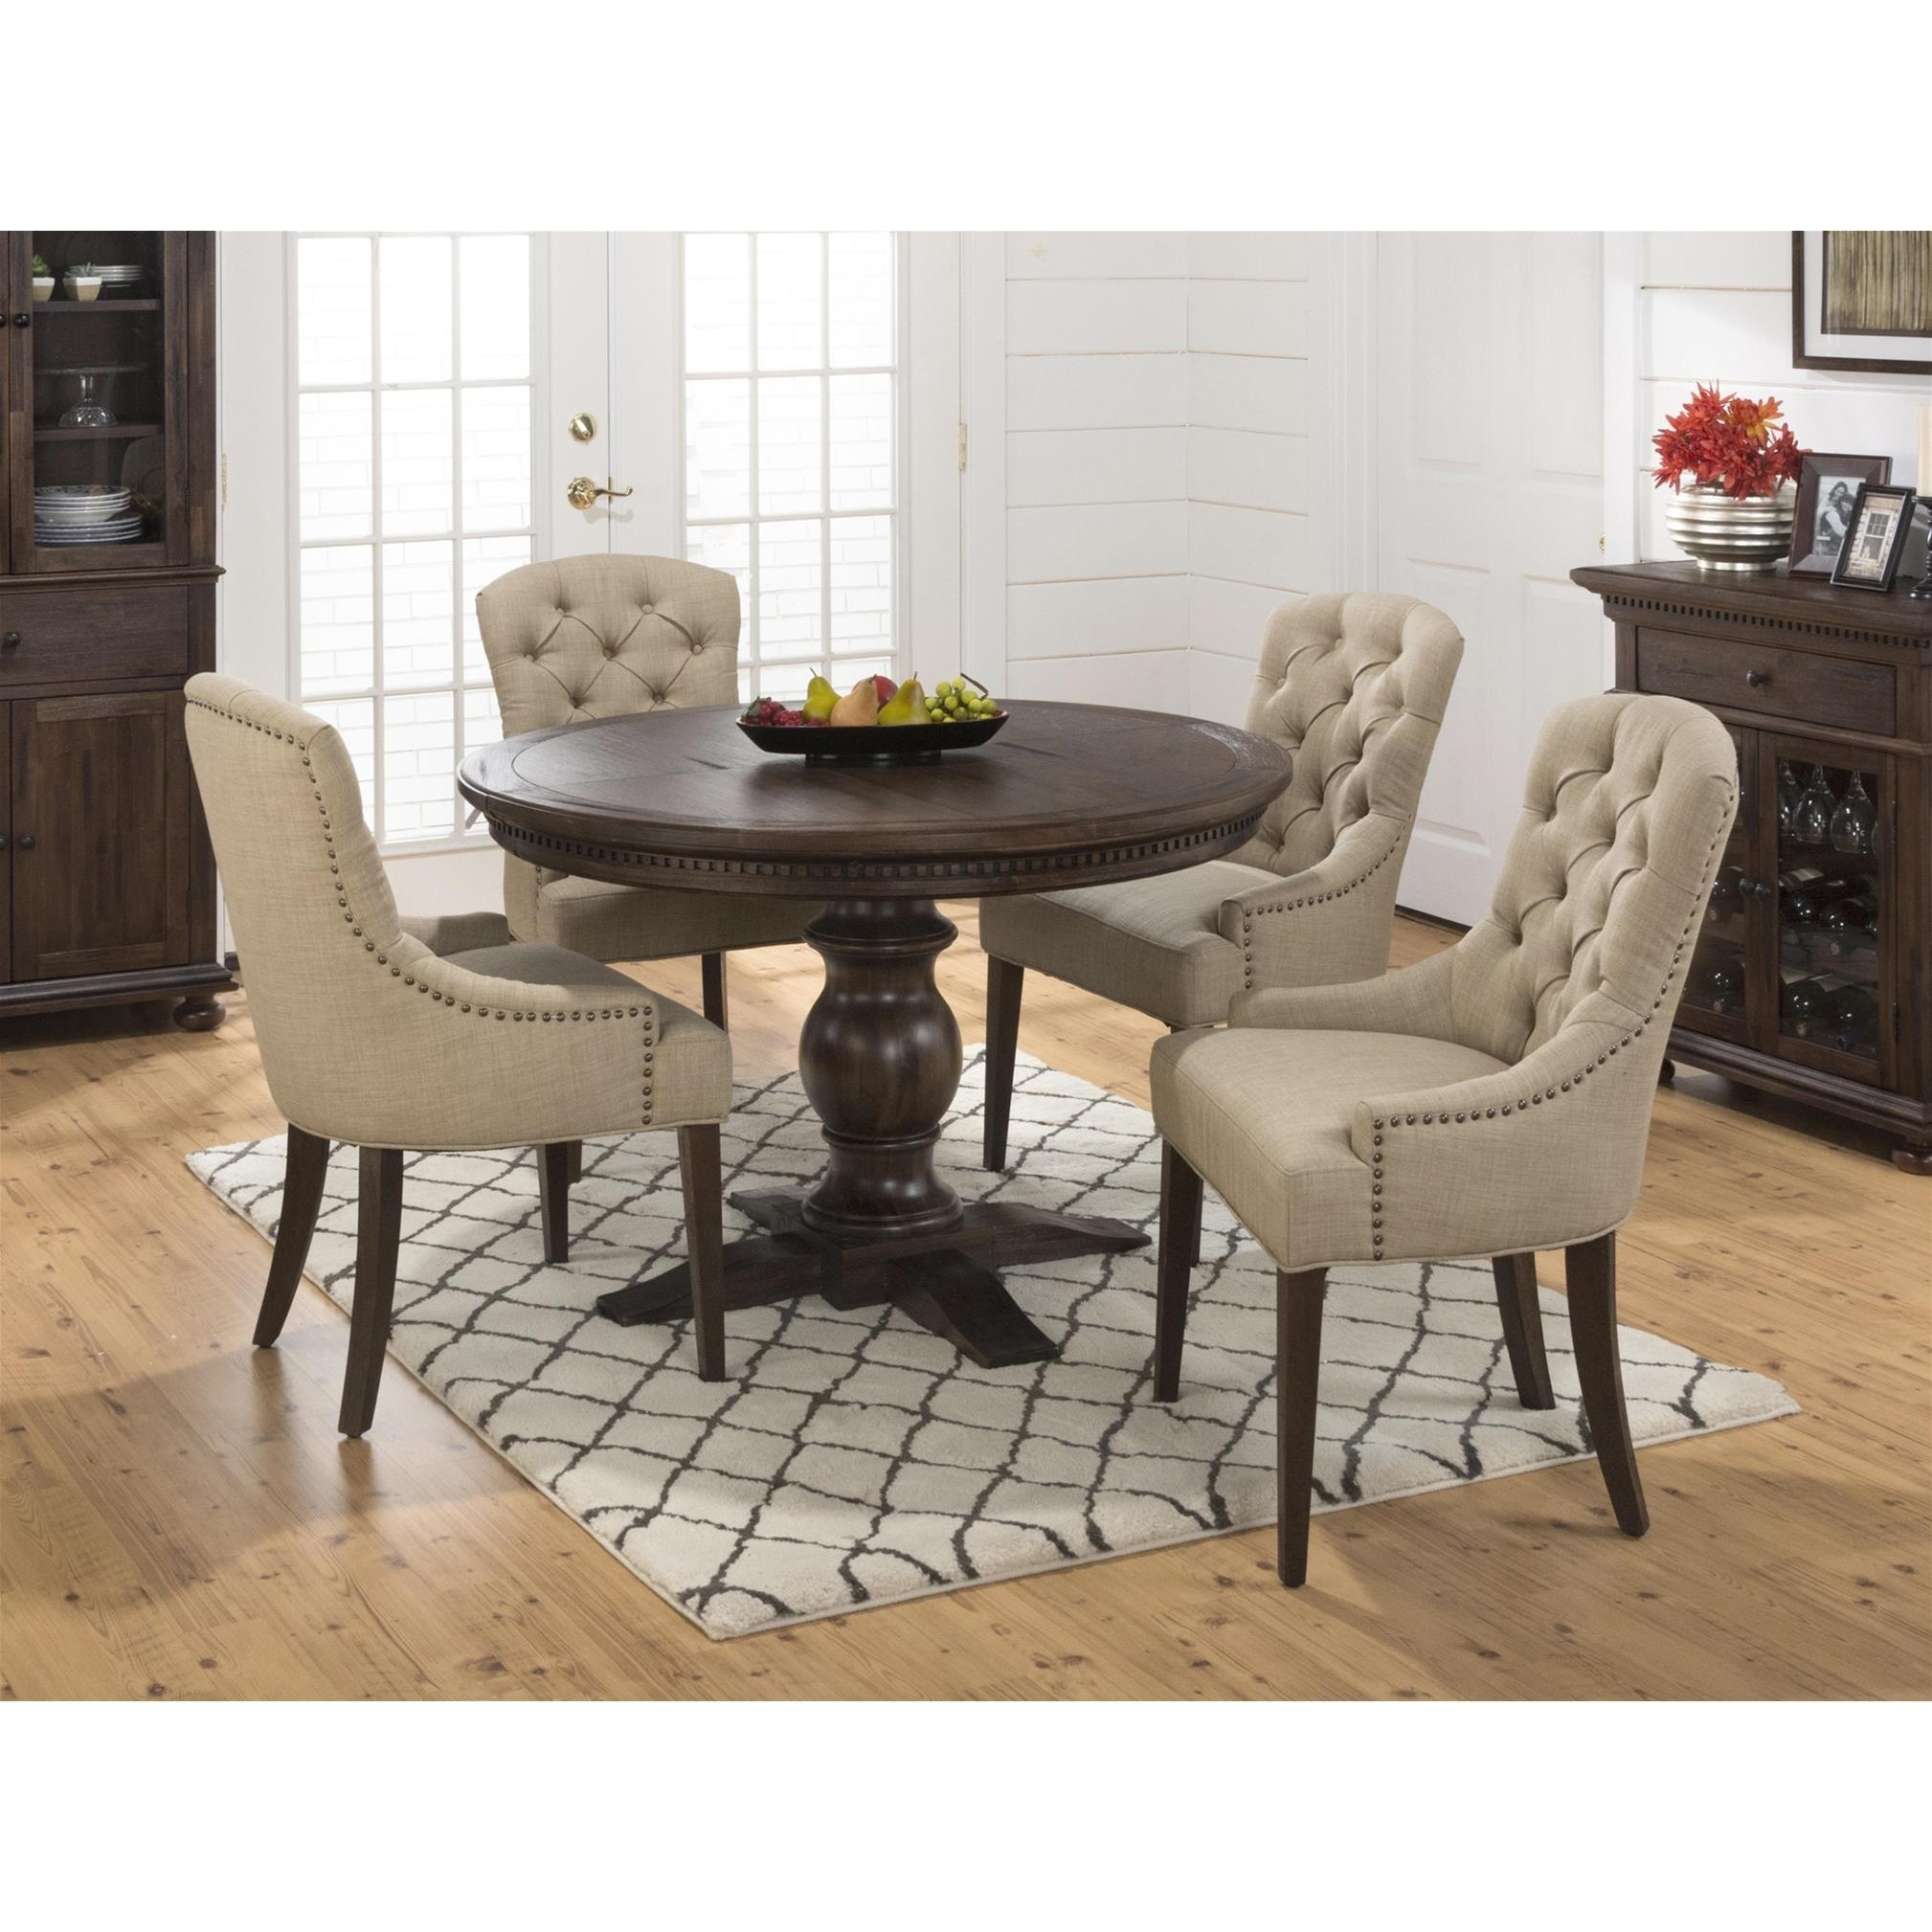 Jofran Geneva Hills 5Pc Round Dining Table Set With Tufted Chairs For Best And Newest Craftsman 5 Piece Round Dining Sets With Uph Side Chairs (Photo 13 of 20)